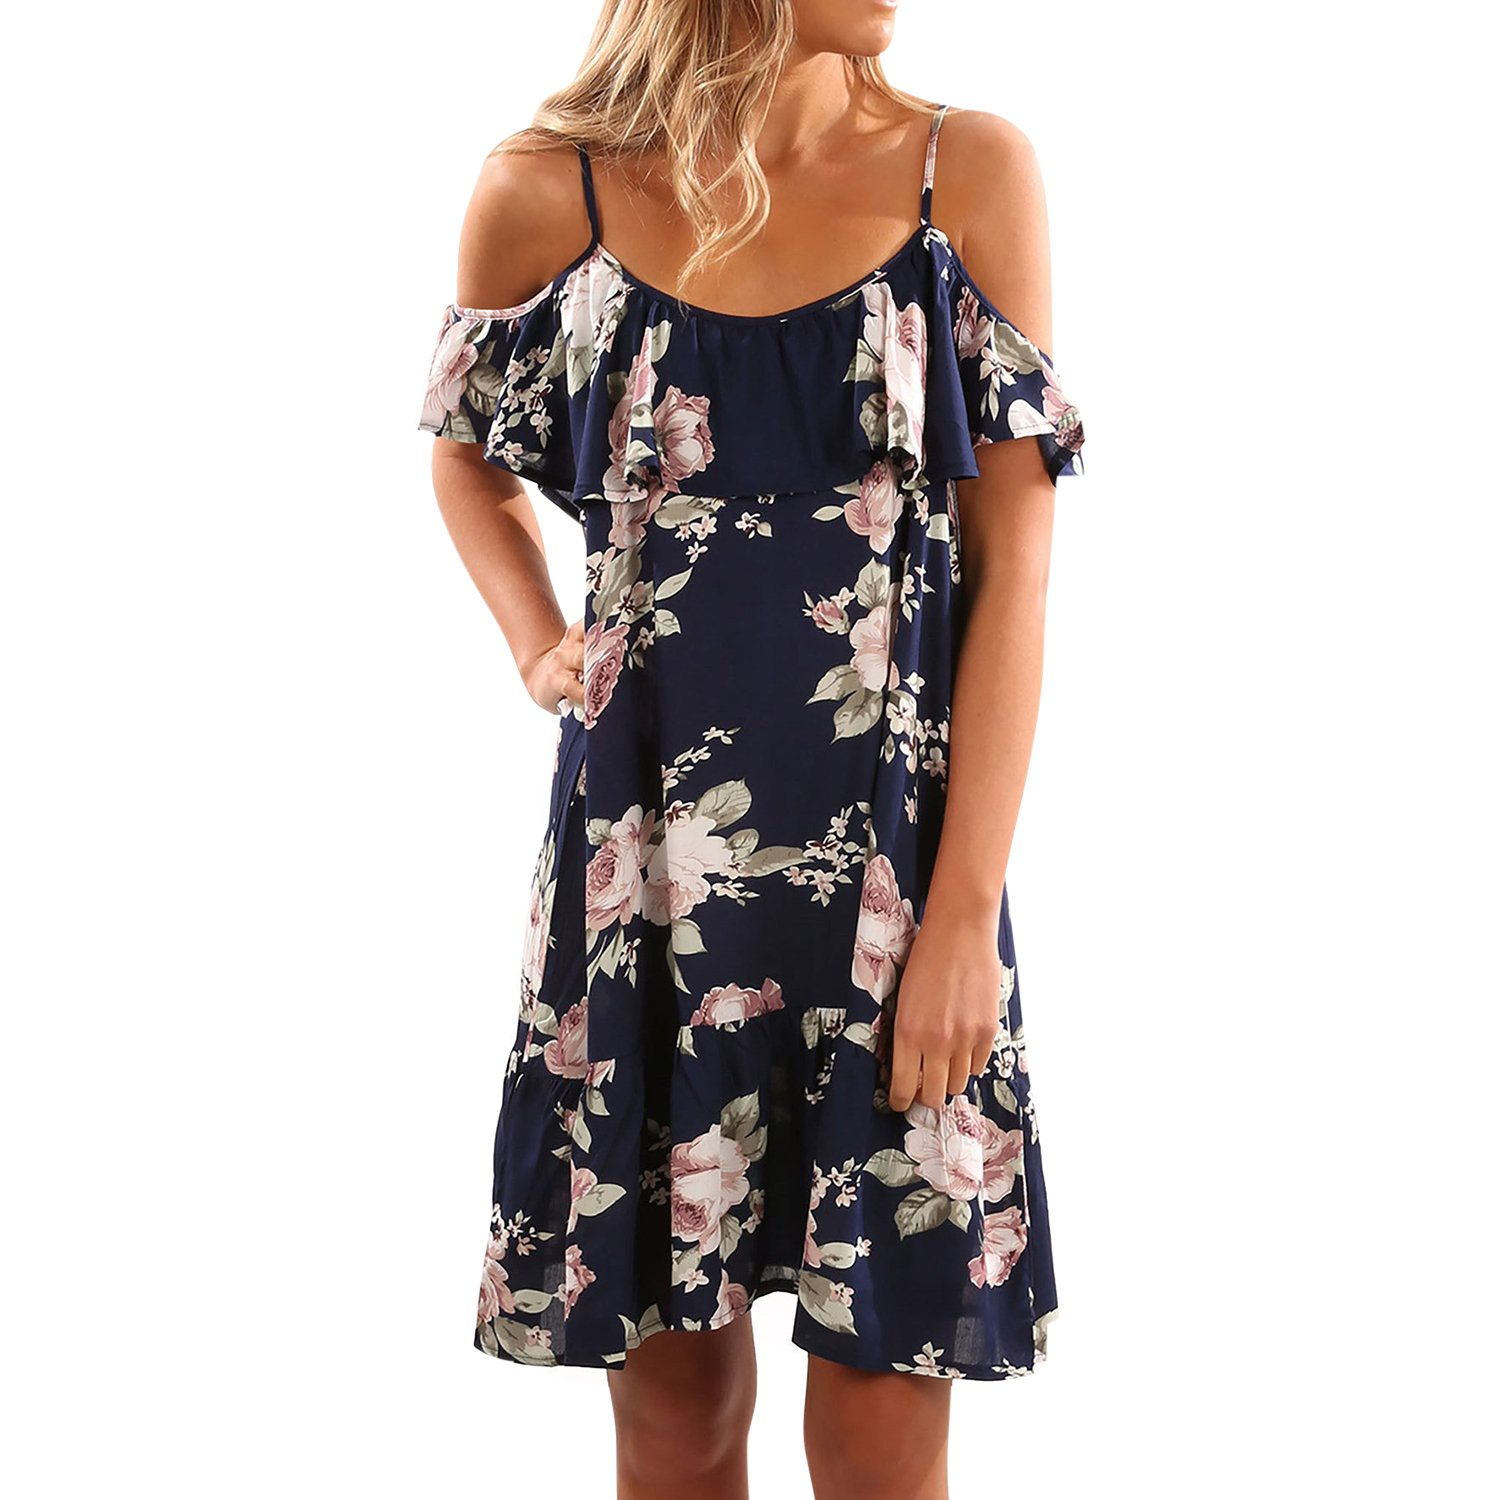 Misscat Women Halter Ruffle Dress Floral Print Off Shoulder Midi Dress